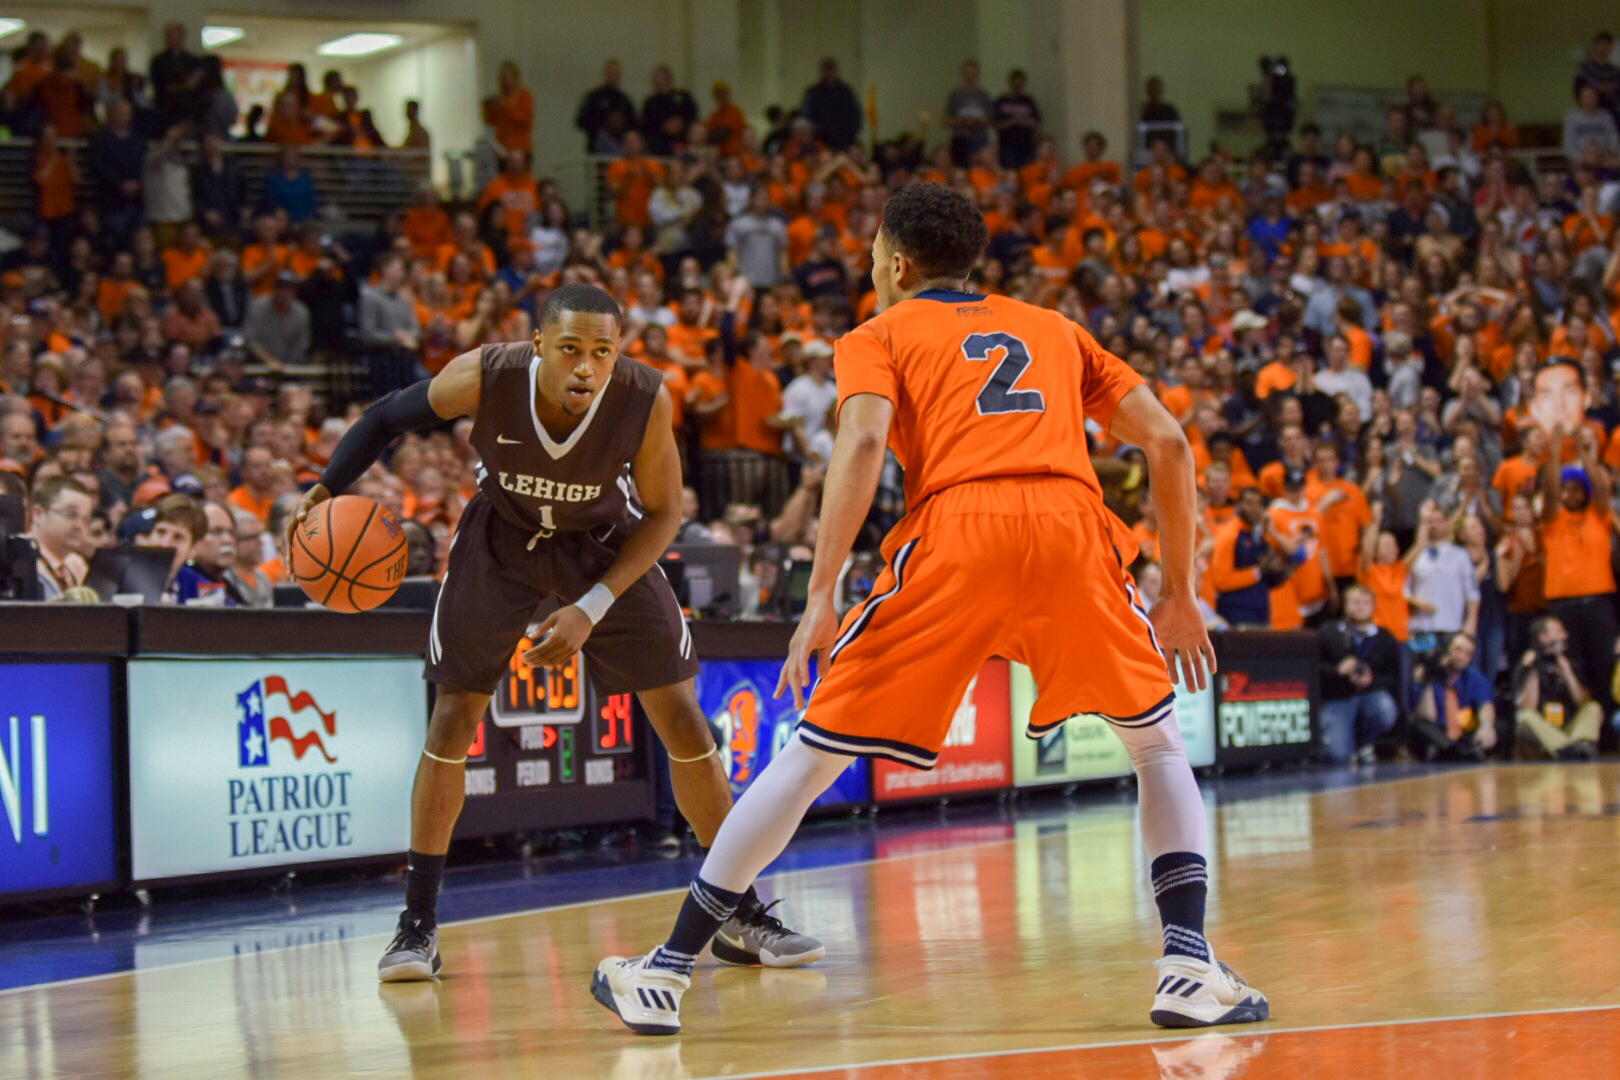 Bucknell wins 2017 Patriot League basketball tournament